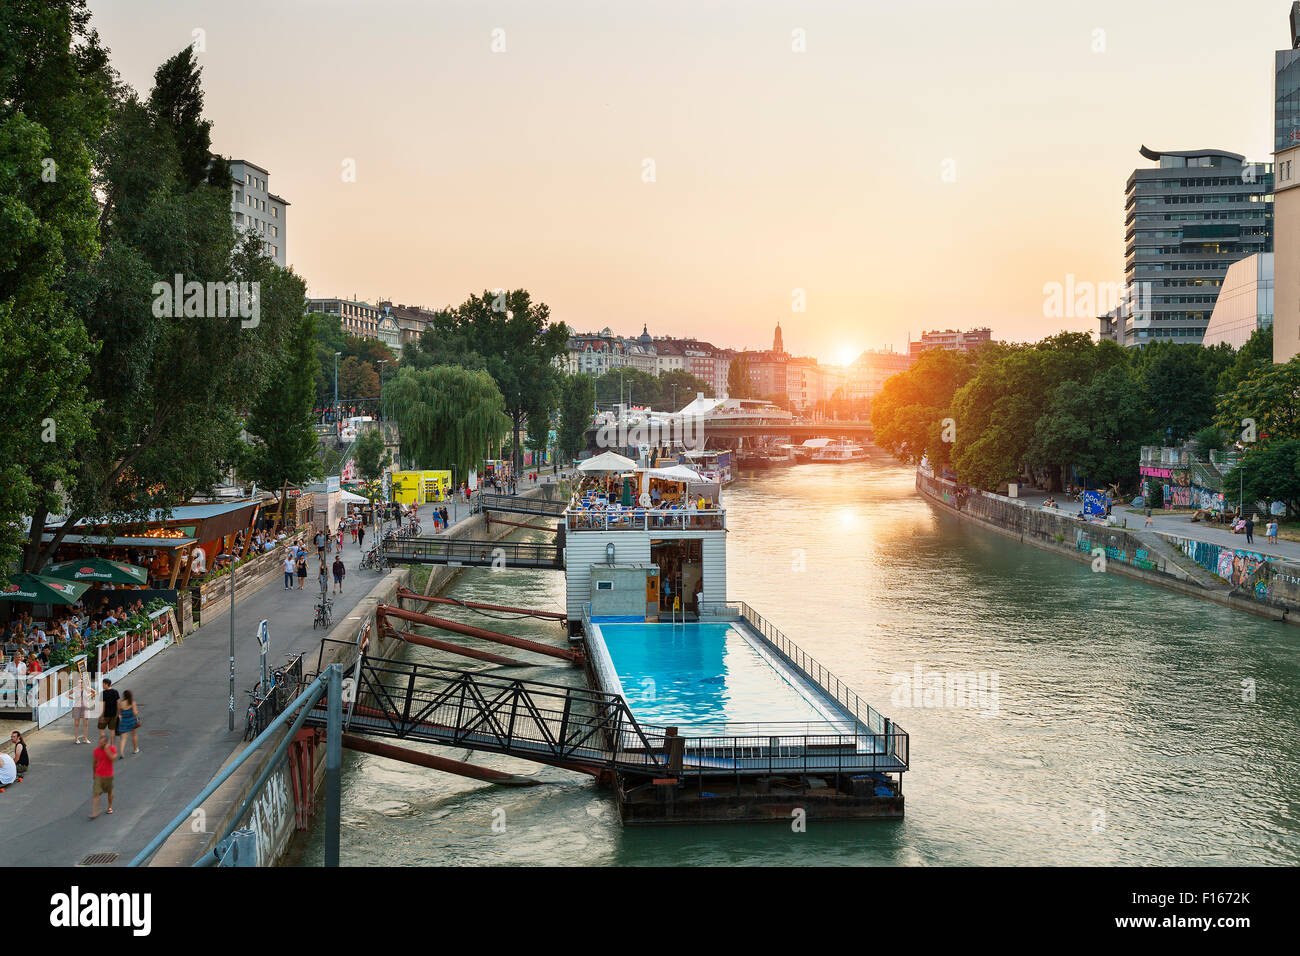 Vienna, Badeschiff (bathing ship), floating public swimming pool on Danube River. Stock Photo